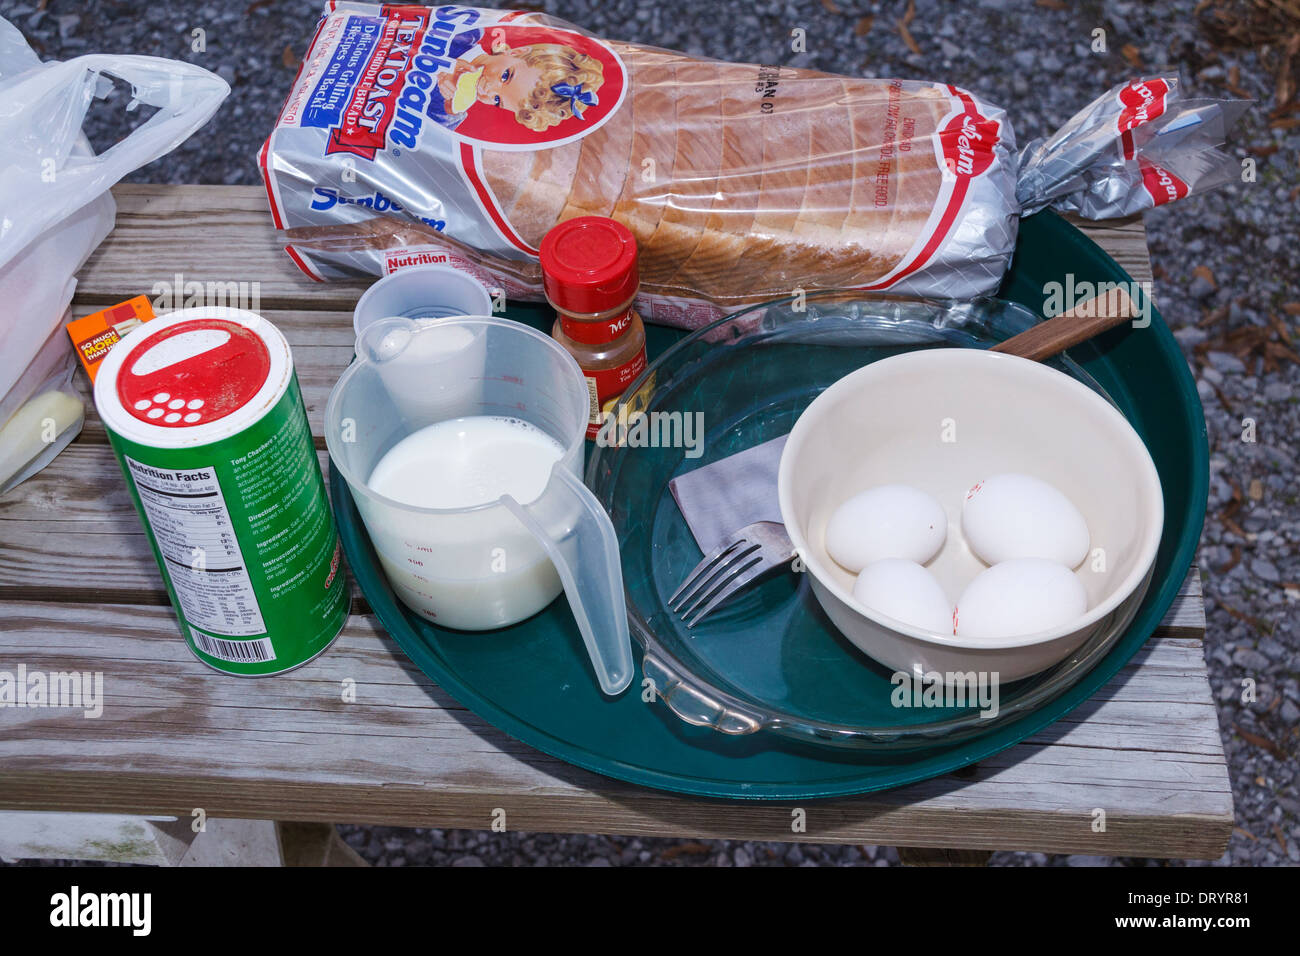 Cooking supplies setup for making French Toast in cast iron Dutch Oven pots Stock Photo